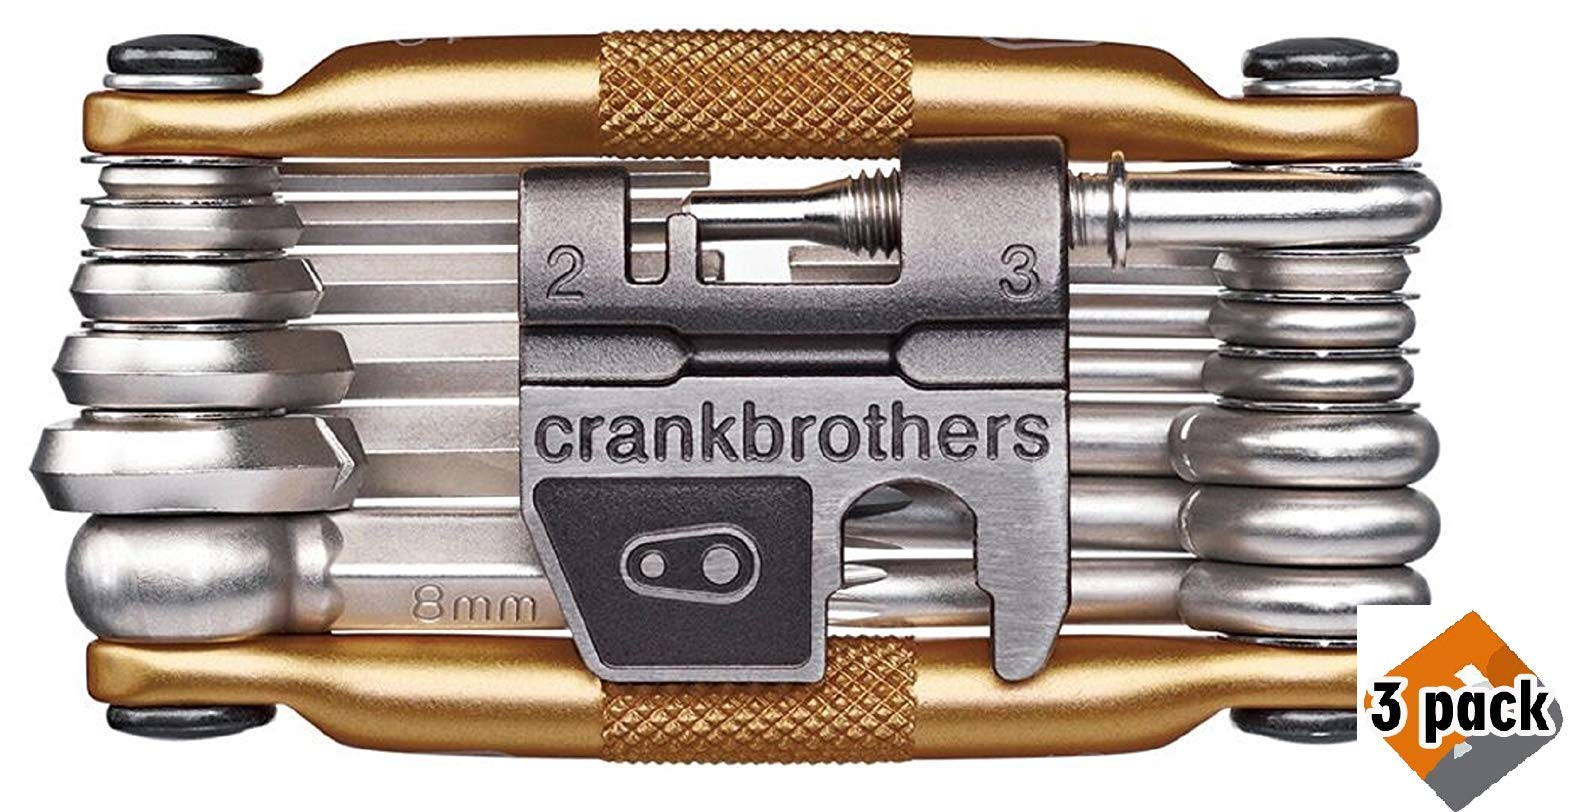 CRANKBROTHERs N2 M19 Bicycle Multi-Tool - Steel Bike Tool, Torx, Hex and Chain Tool Compatible, 3 Pack